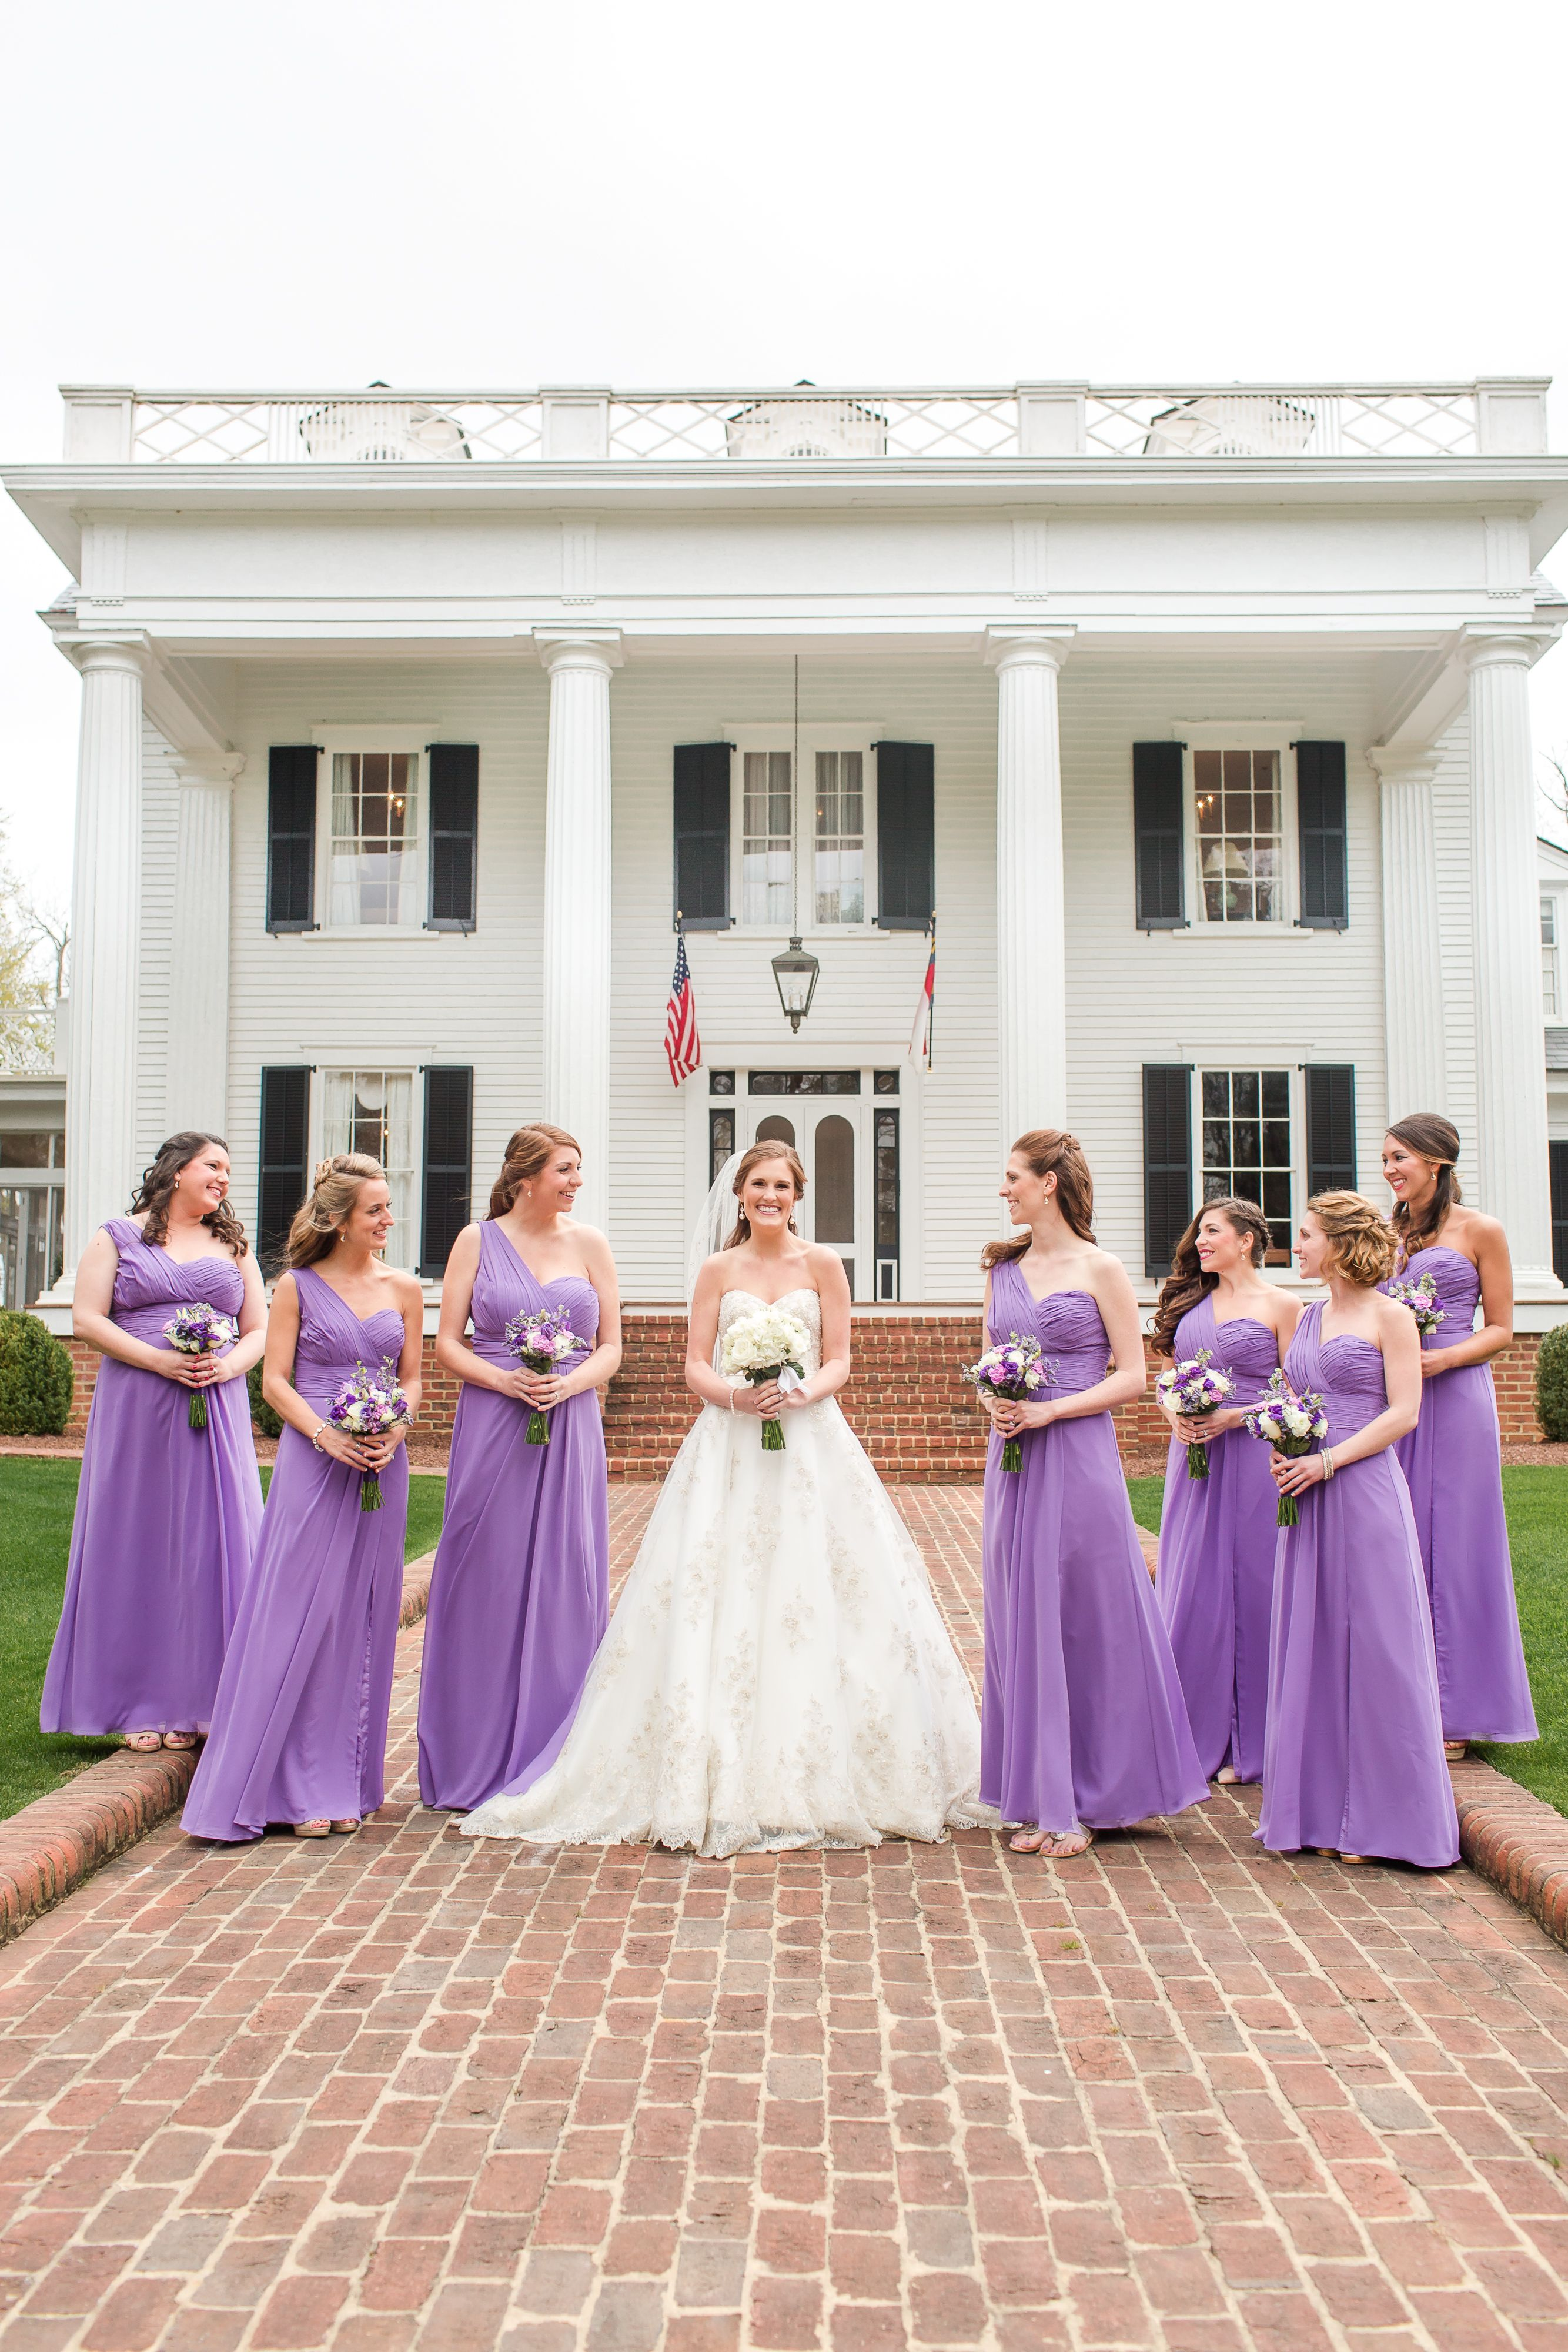 Amy Allen Photography. www.amyallenphotography.com Southern Rose Hill Plantation Wedding. Bridesmaids